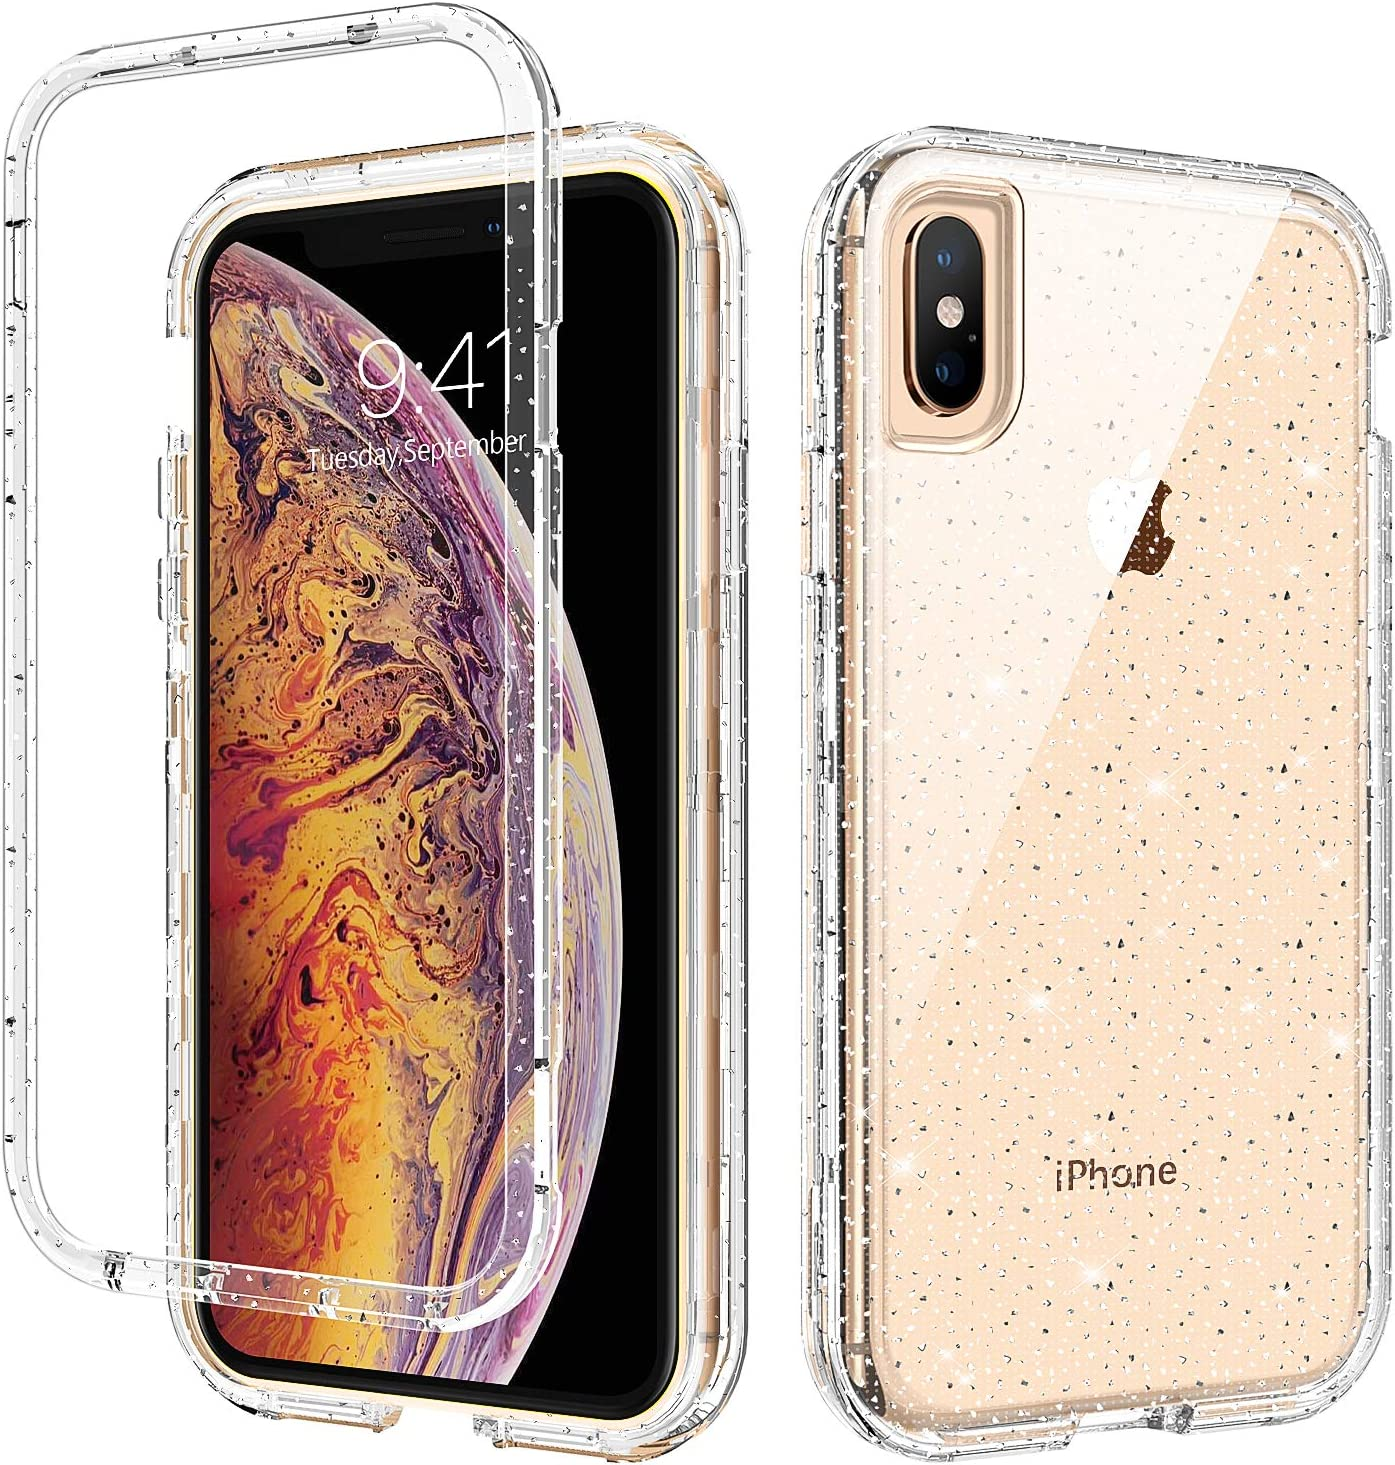 iPhone Xs Max Case, GUAGUA Glitter Bling Clear Crystal Shiny Sparkly Cover for Girls Women Three Layer Hybrid Hard PC Soft TPU Bumper Shockproof Protective Phone Case for iPhone Xs Max 6.5-inch 2018